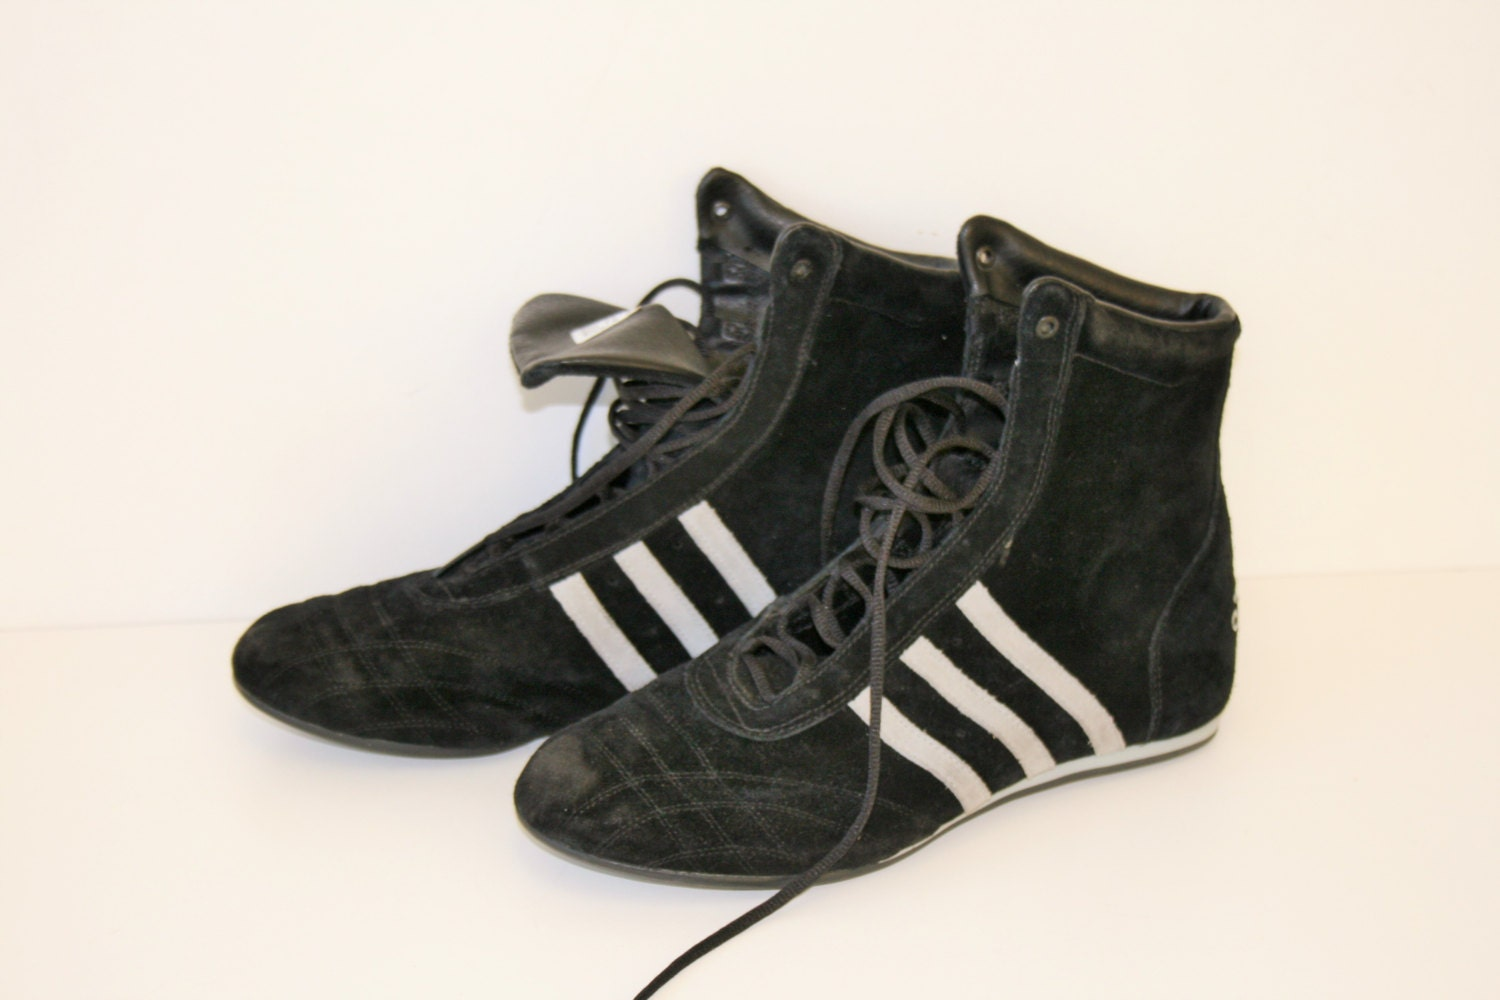 black adidas boxing boots genuine leather lace up sports